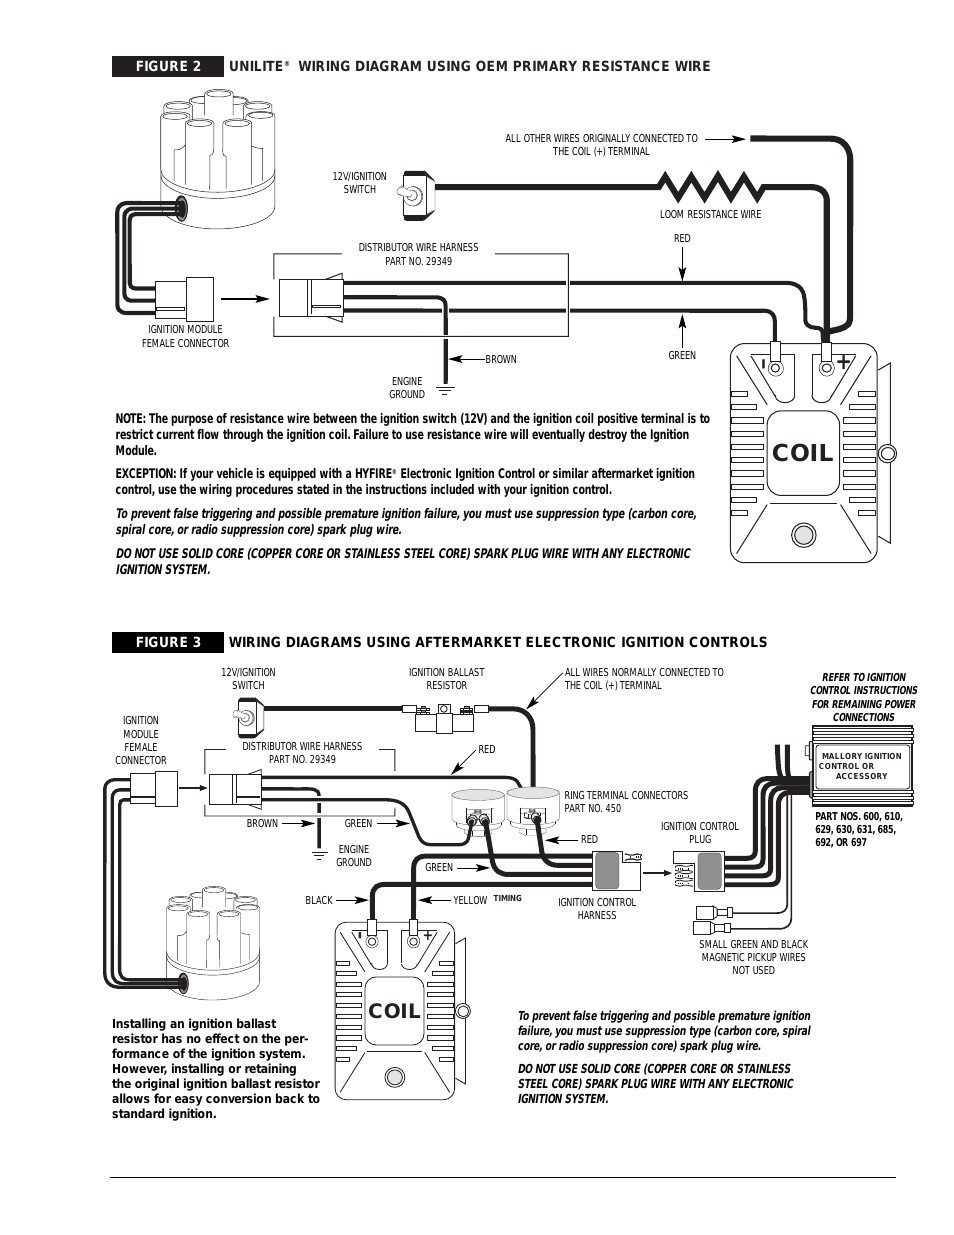 Mallory Magnetic Breakerless Distributor Wiring Diagram Schematic Vertex Wire Data 81 Monte Carlo Best Of